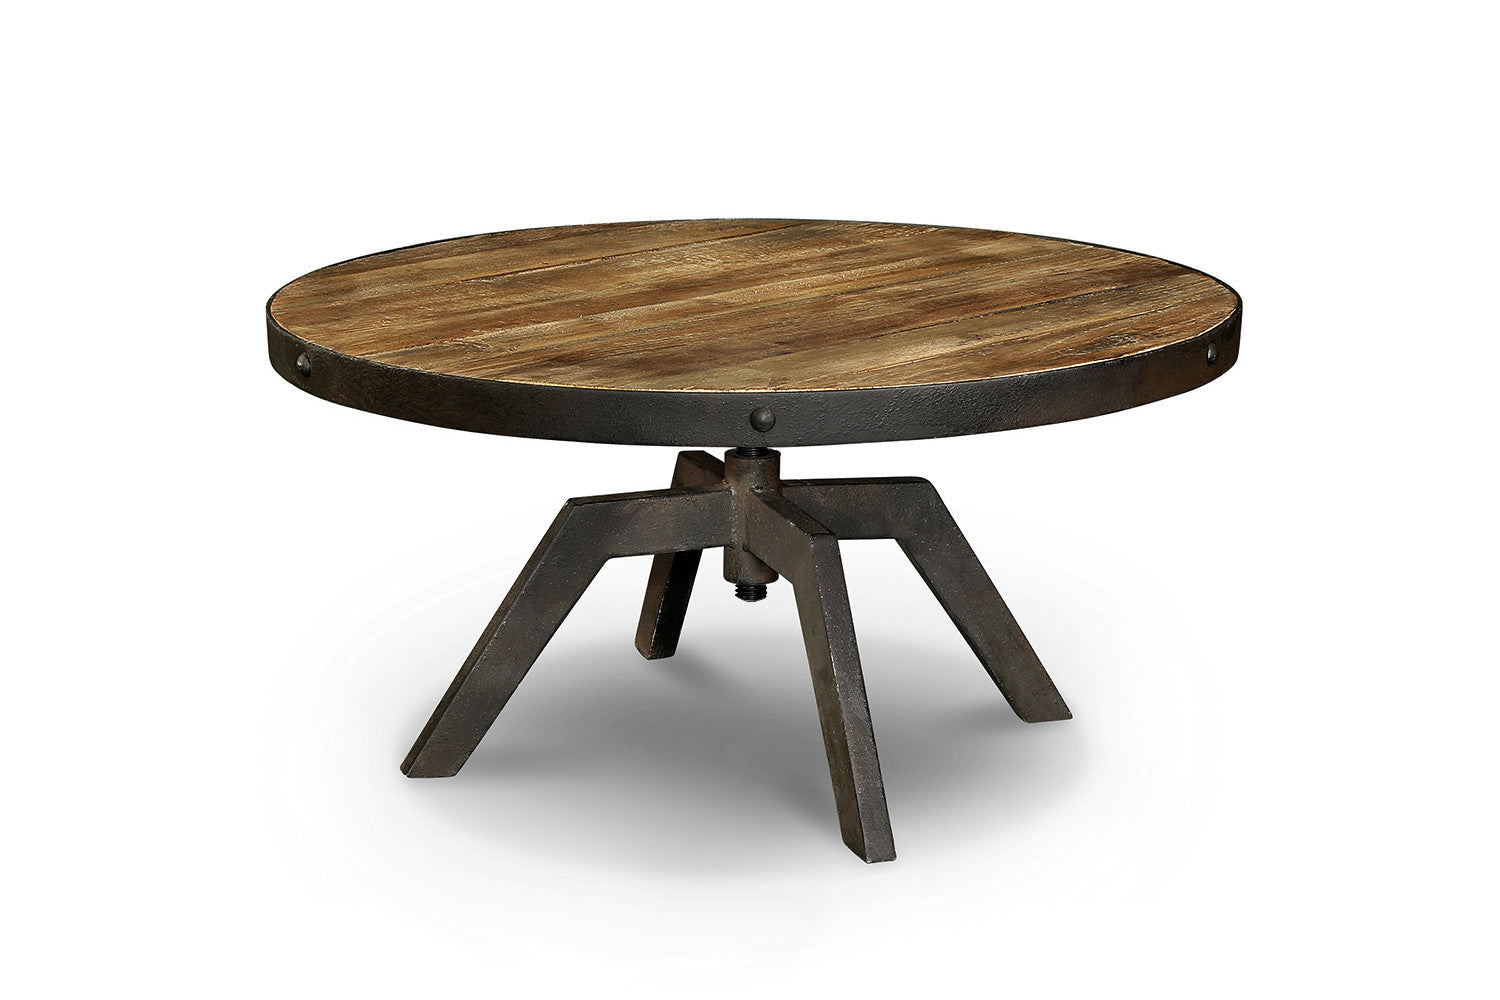 Table basse industrielle en bois et m tal tb03 rose - Table basse bois pied metal ...